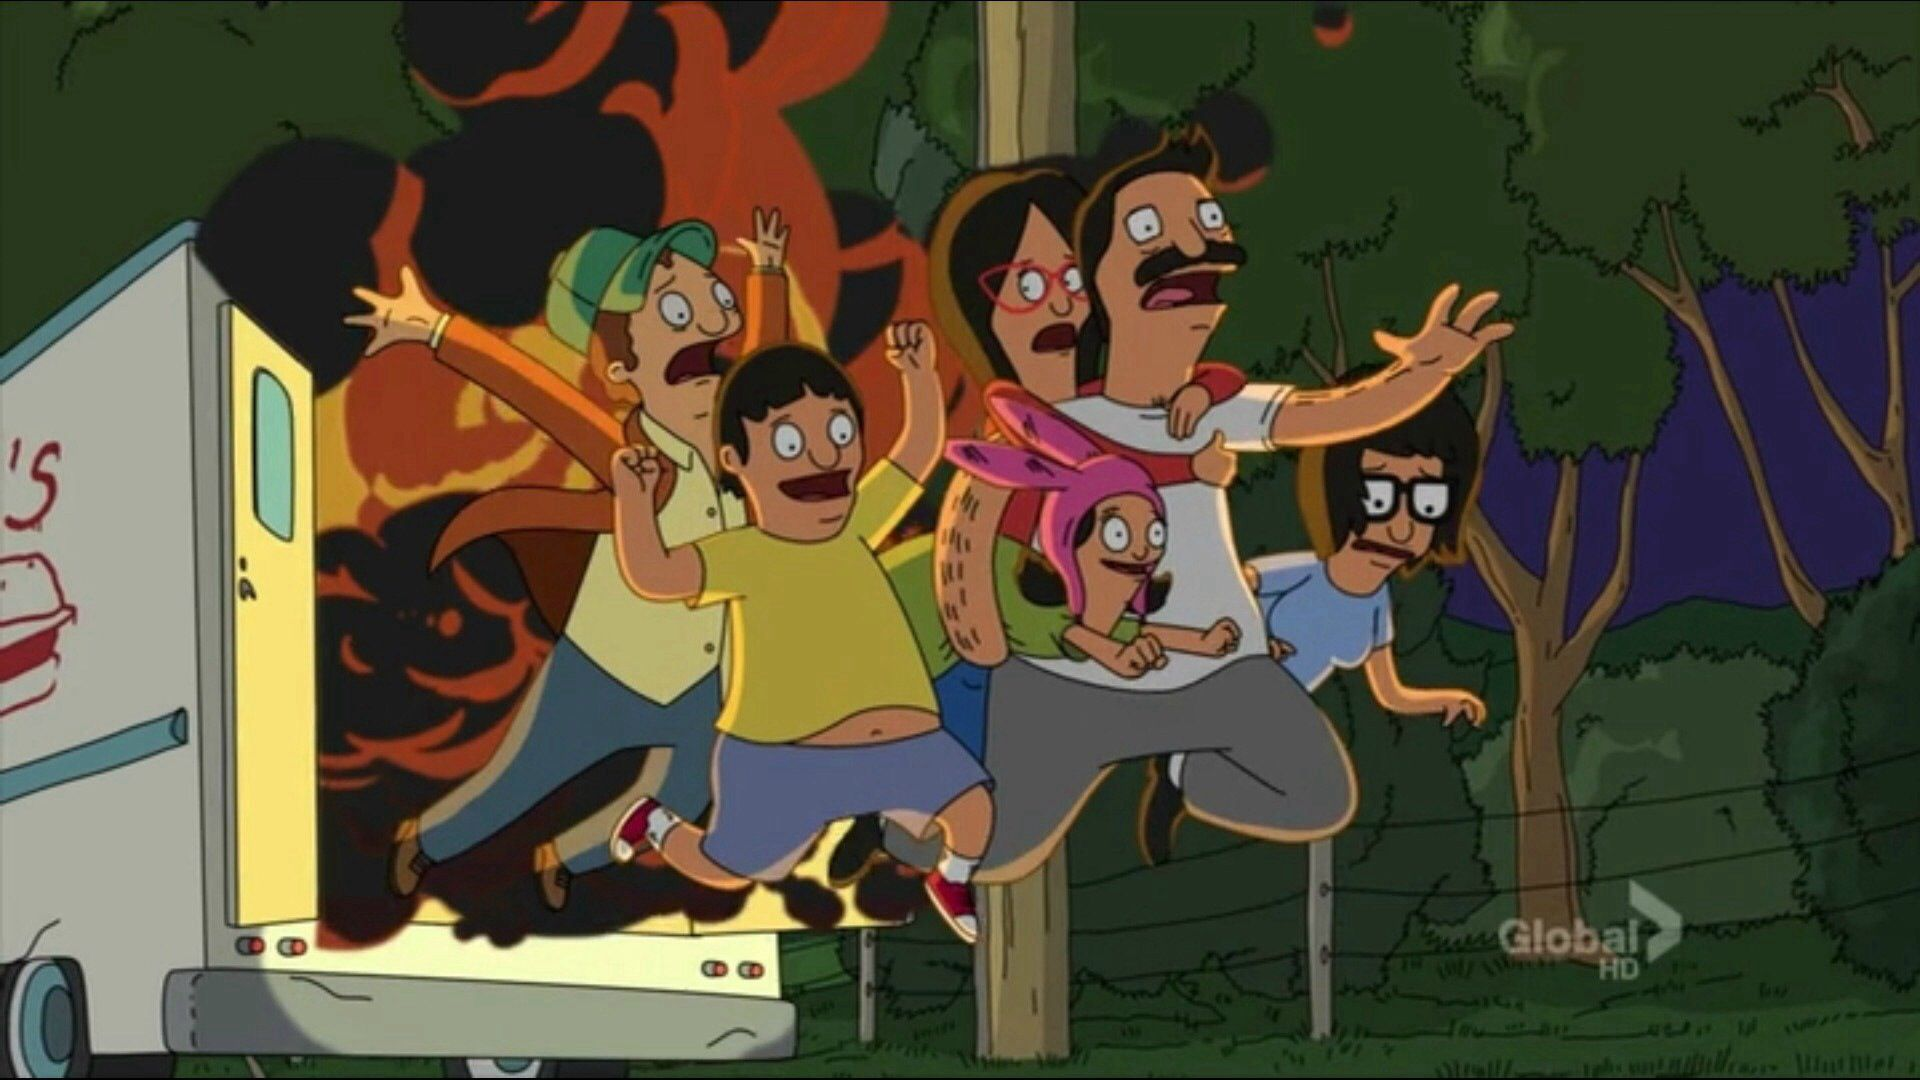 Bobs burgers food truck meets an untimely and fiery end